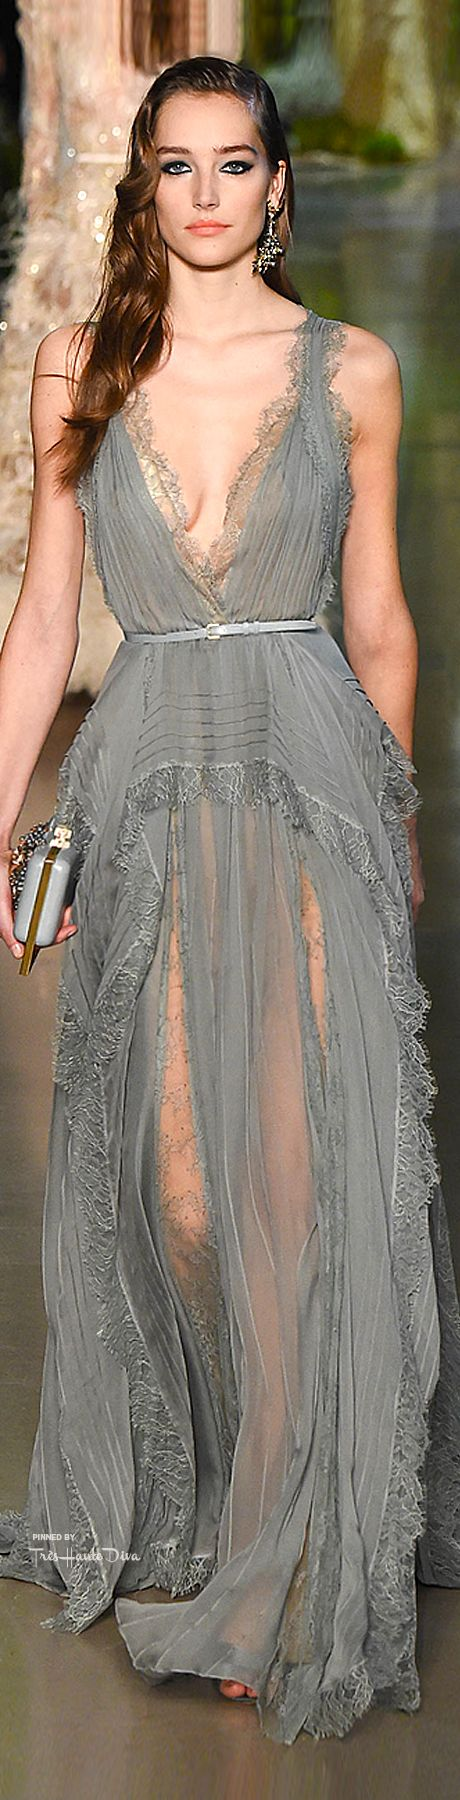 Elie Saab Spring 2015 Couture ♔THD♔                                                                                                                                                                                 More